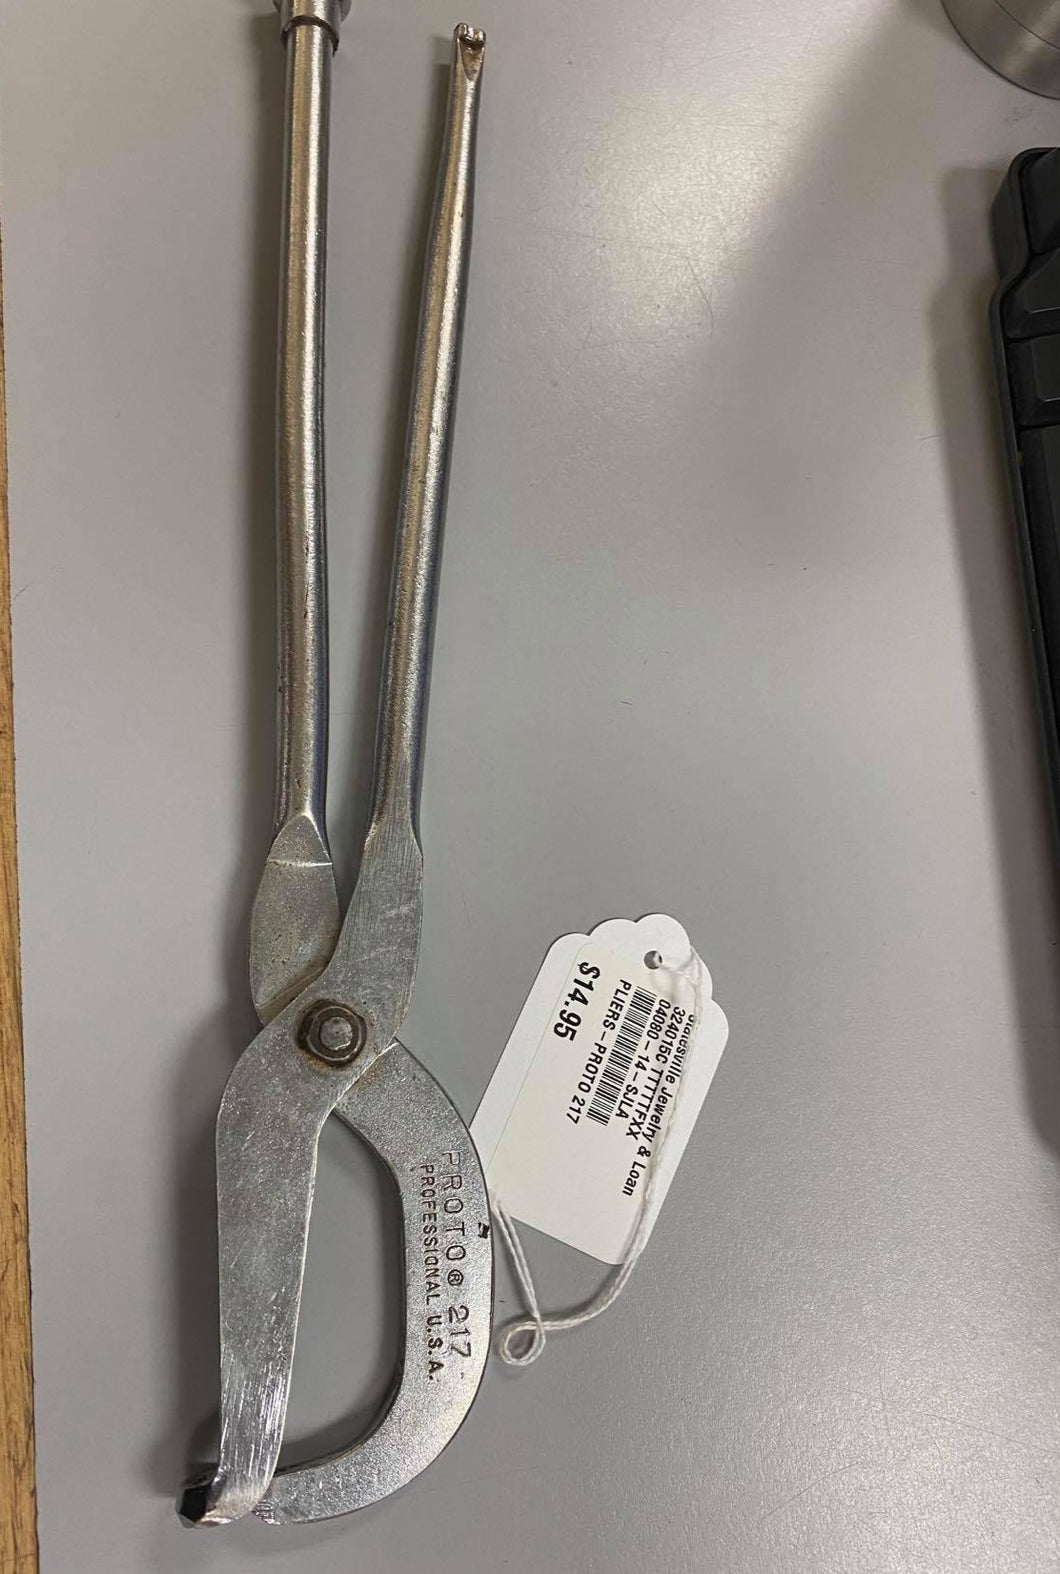 Proto Professional 217 Drum Brake Spring Pliers - USA, Pre-owned item #324015c